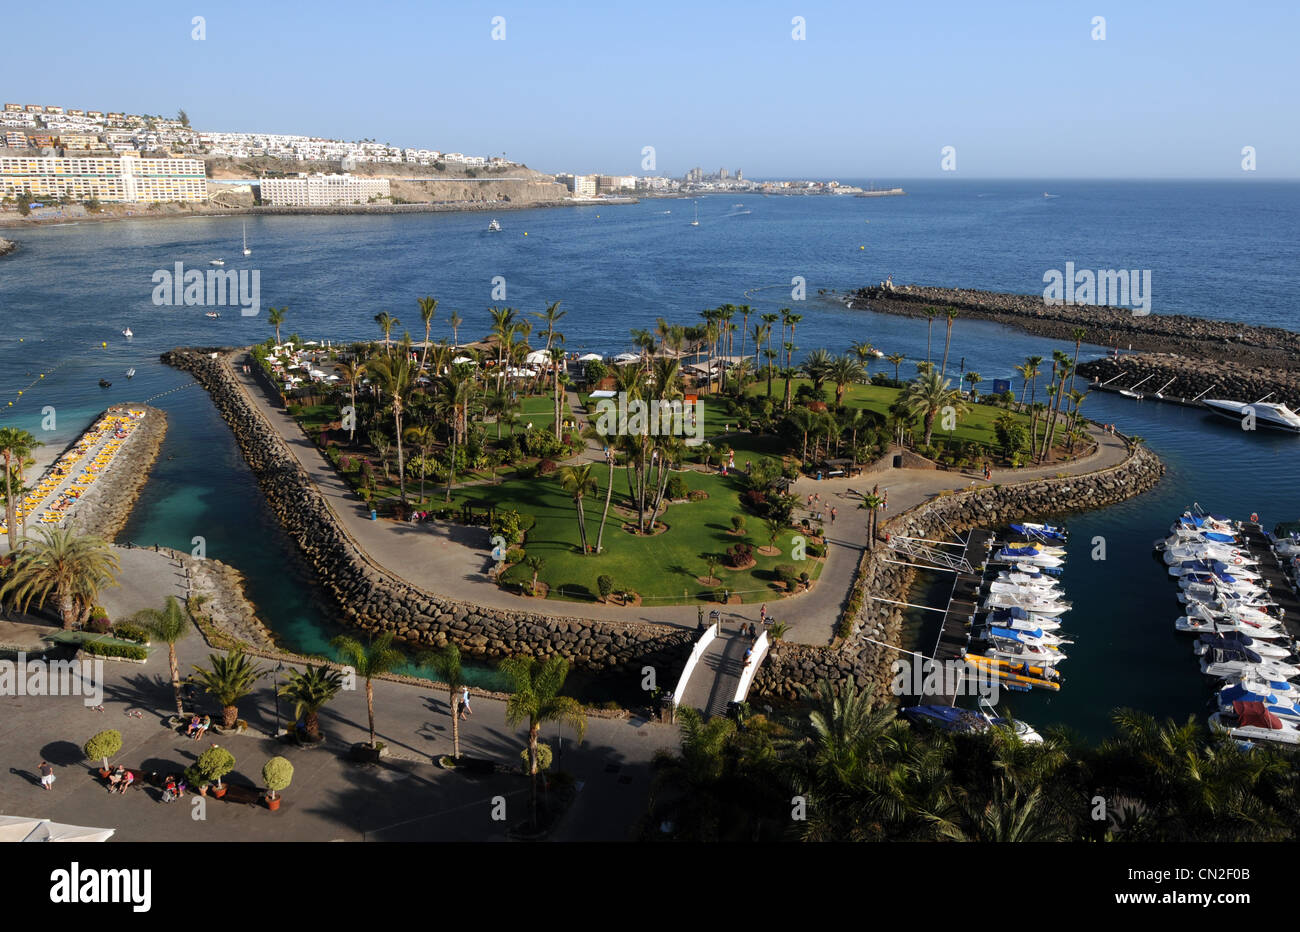 Anfi Del Mar Resort, heart shaped island, Gran Canaria, Canary Islands - Stock Image